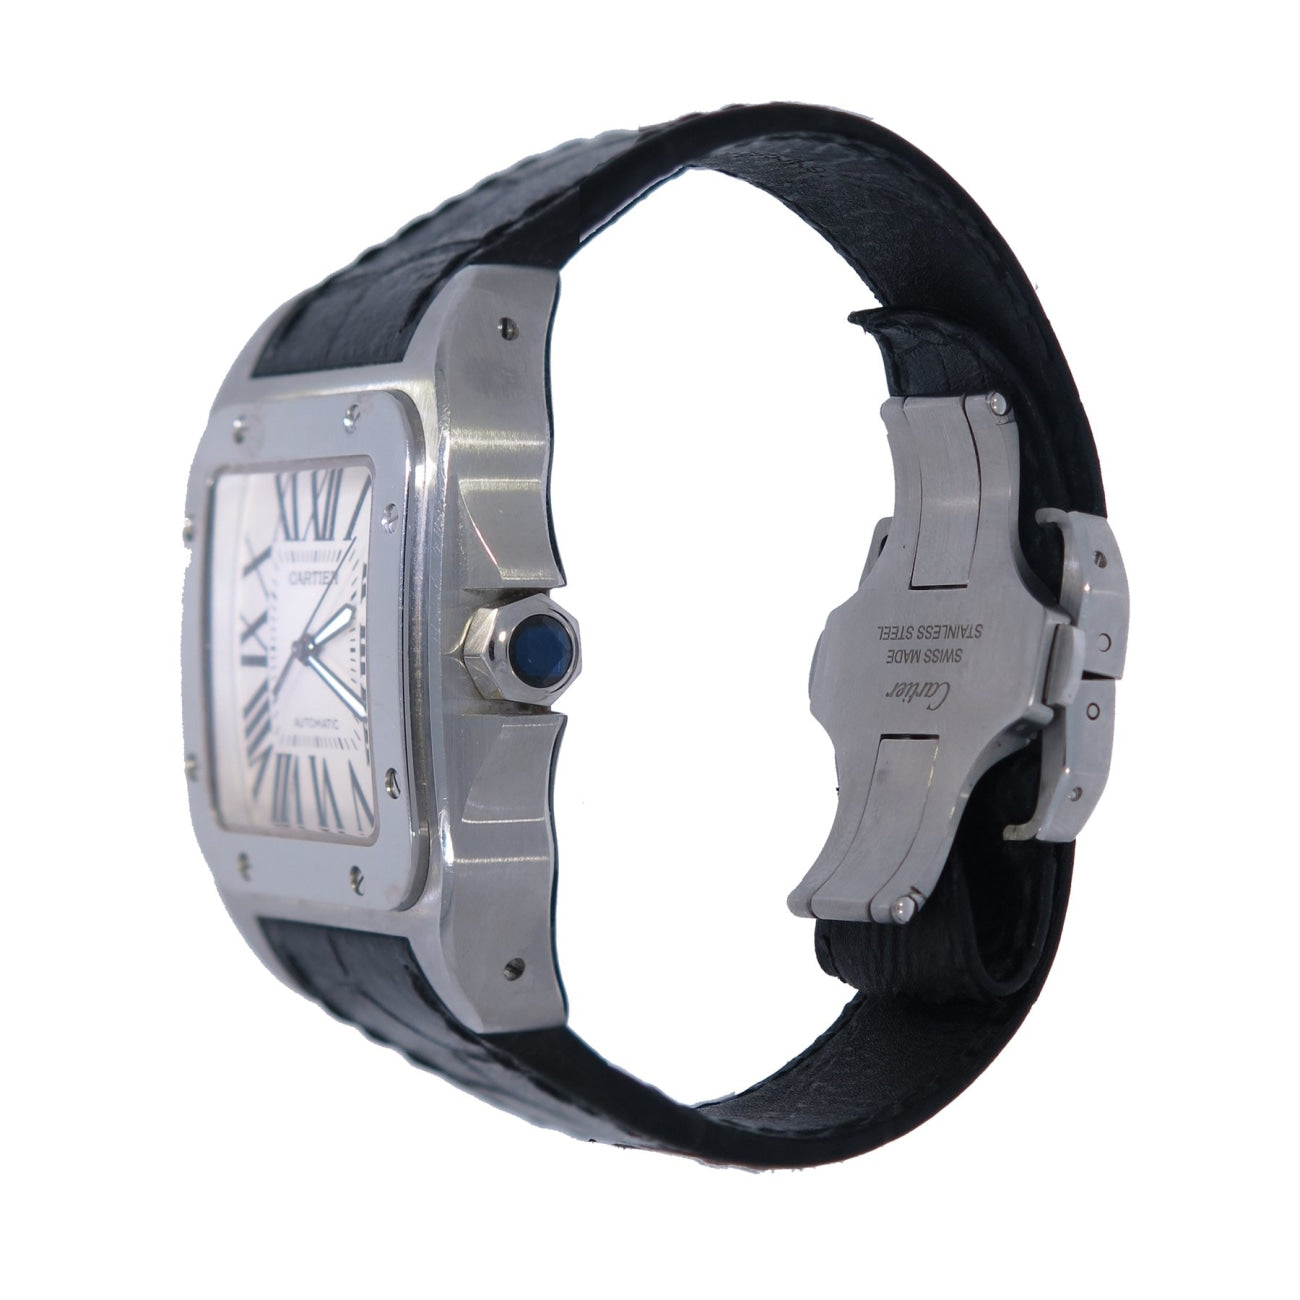 Pre-Owned Cartier Watches - Santos 100 | Manfredi Jewels